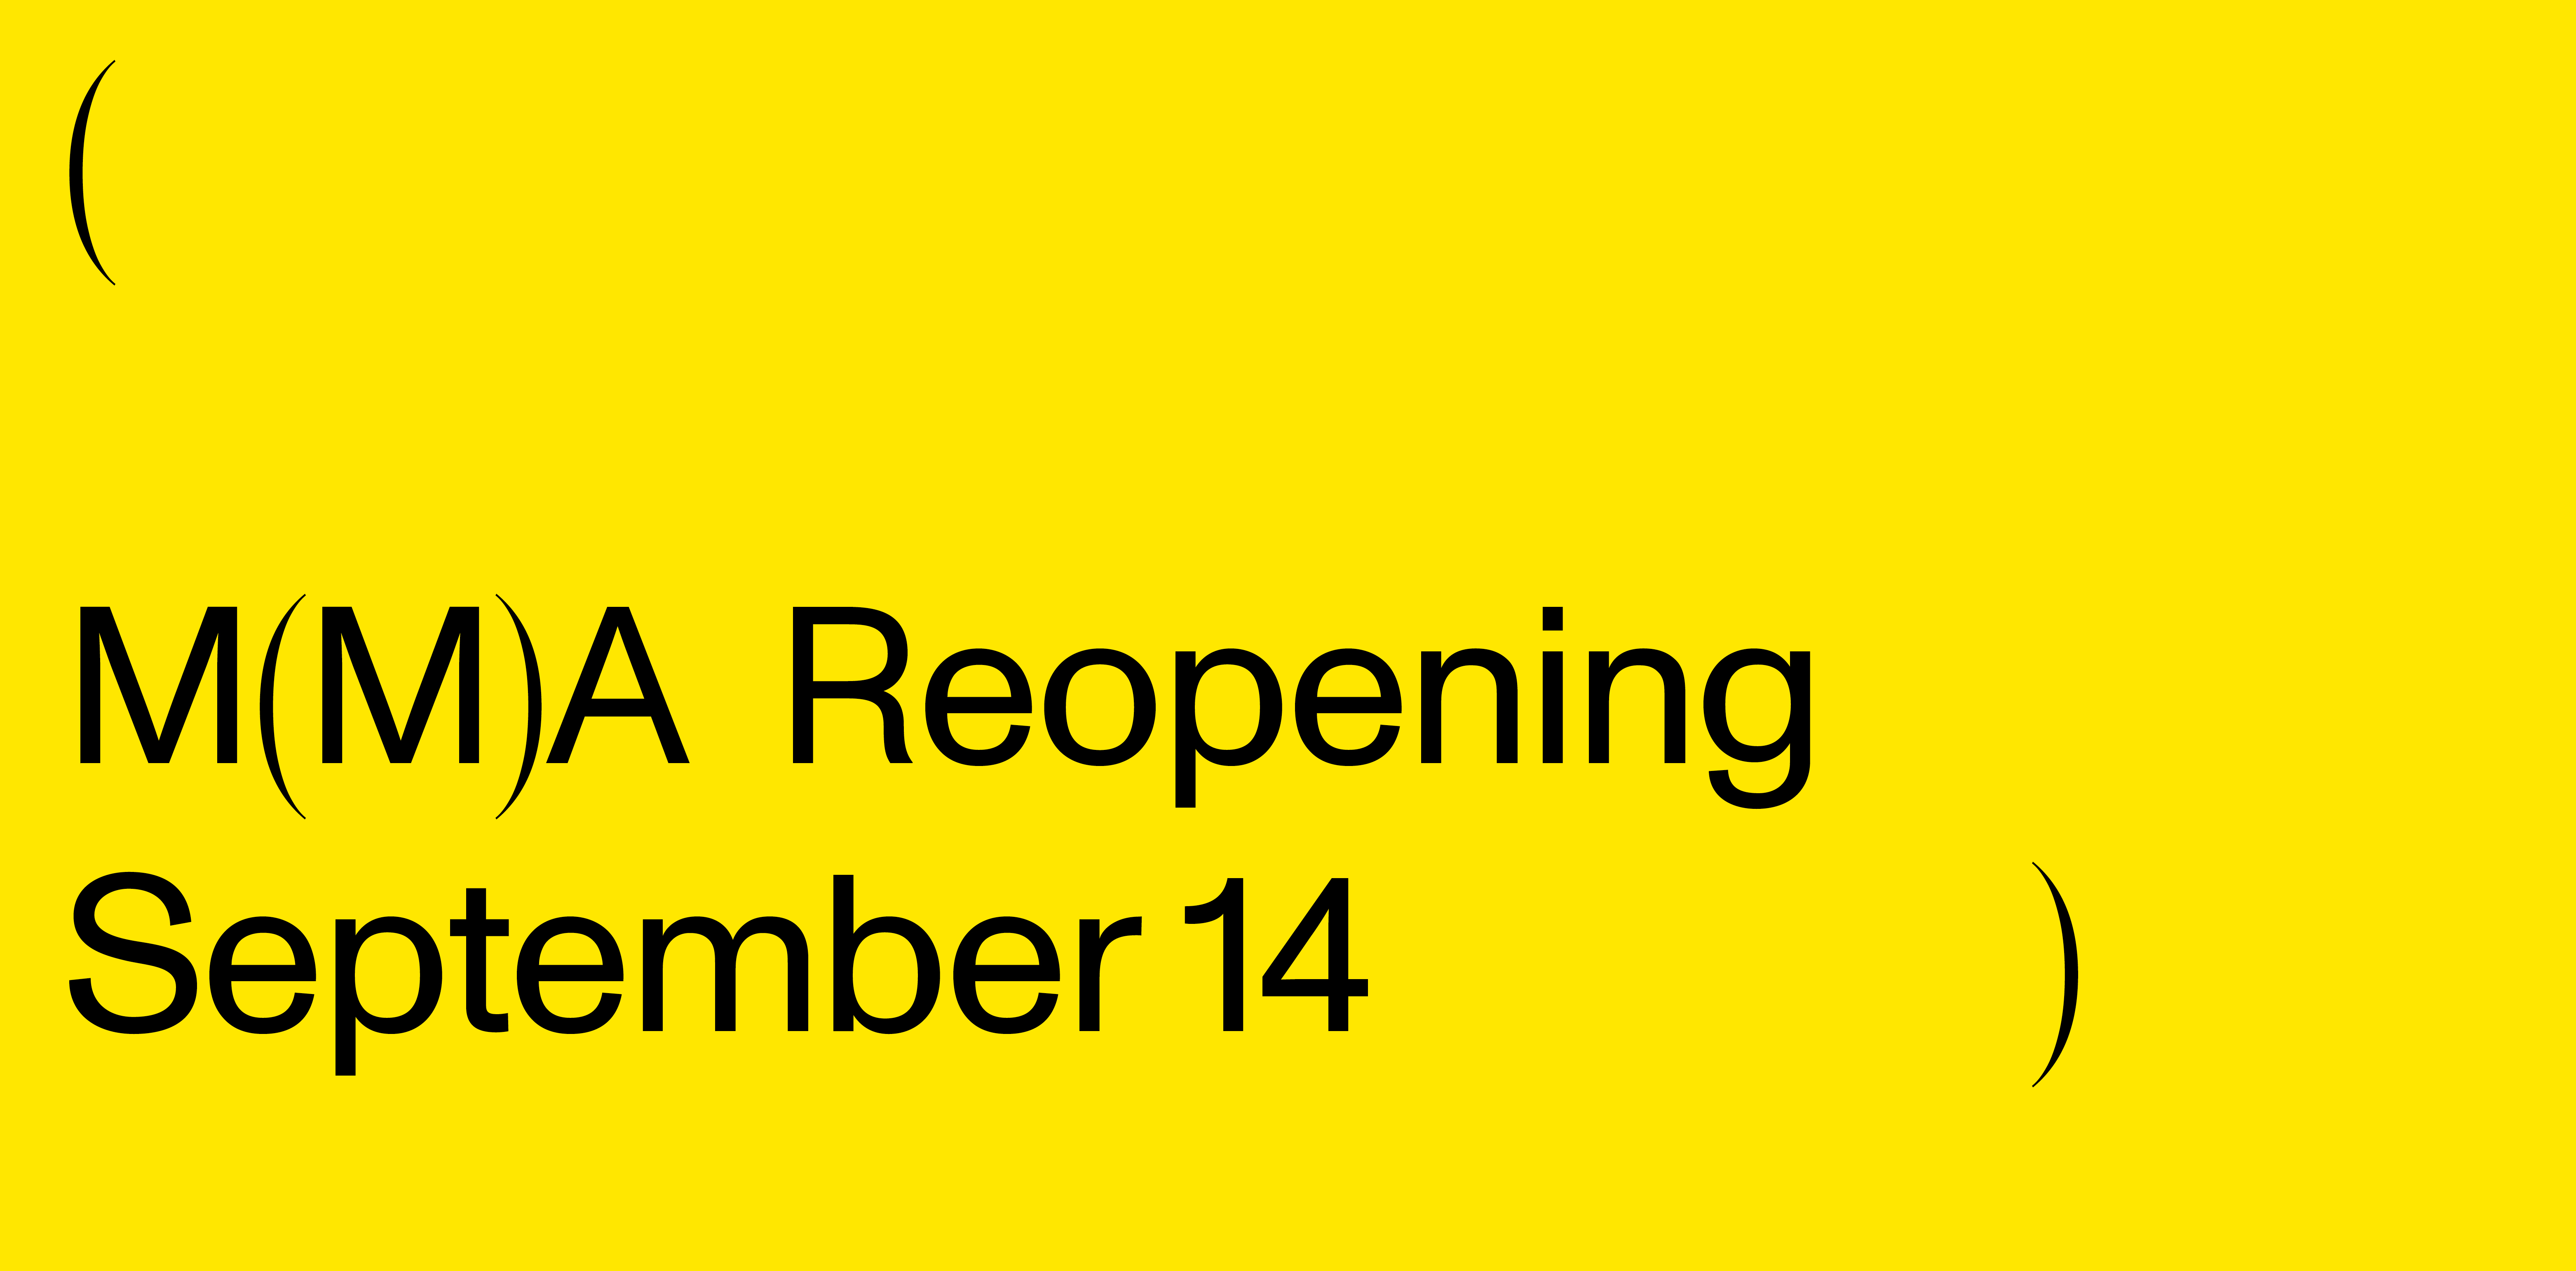 Yellow graphic with black text that says MMA Reopening September 14